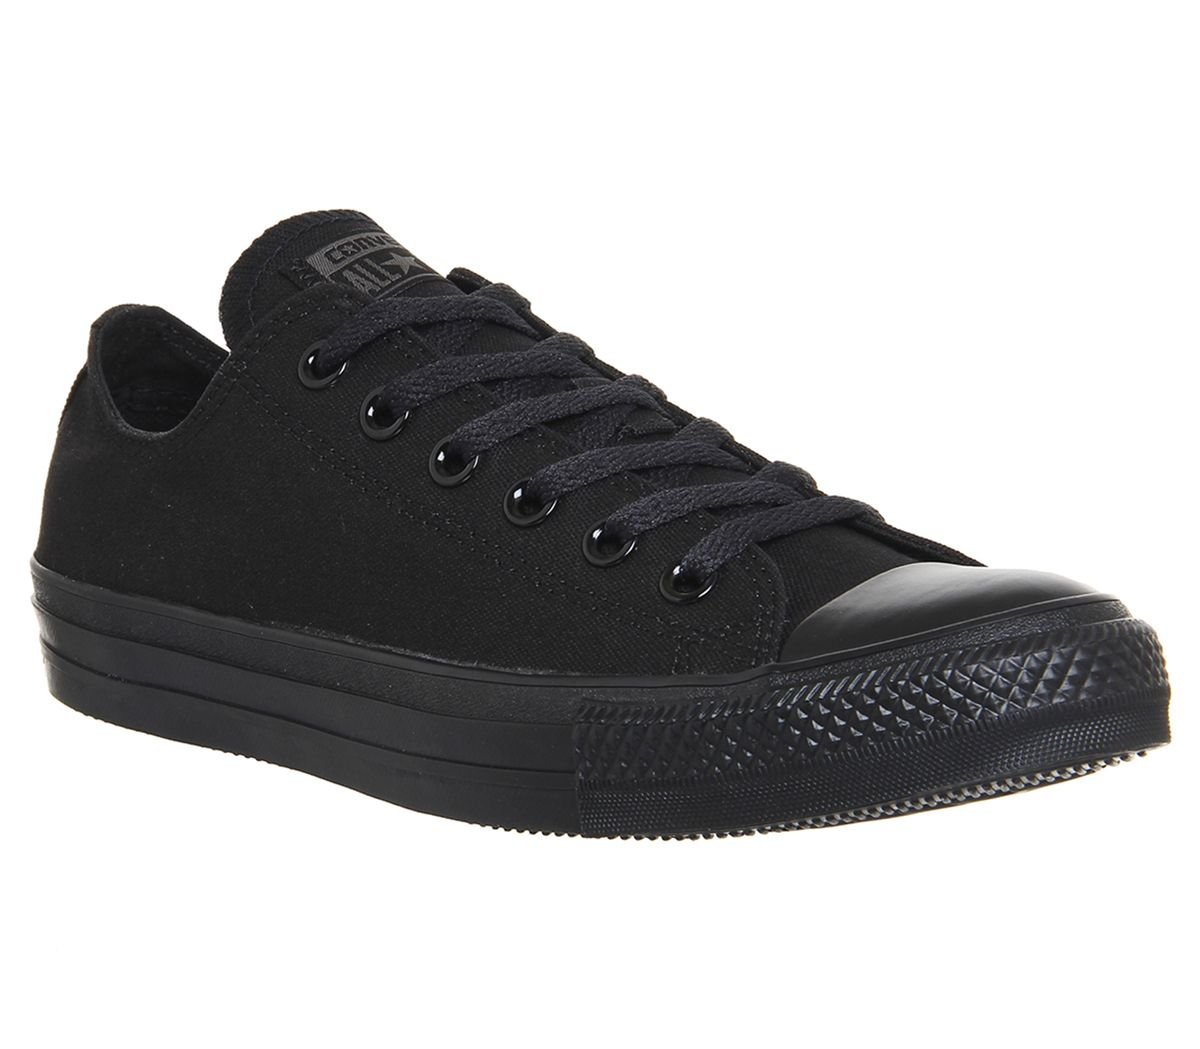 0c91bb004828 Converse All Star Low Black Mono Canvas - Unisex Sports